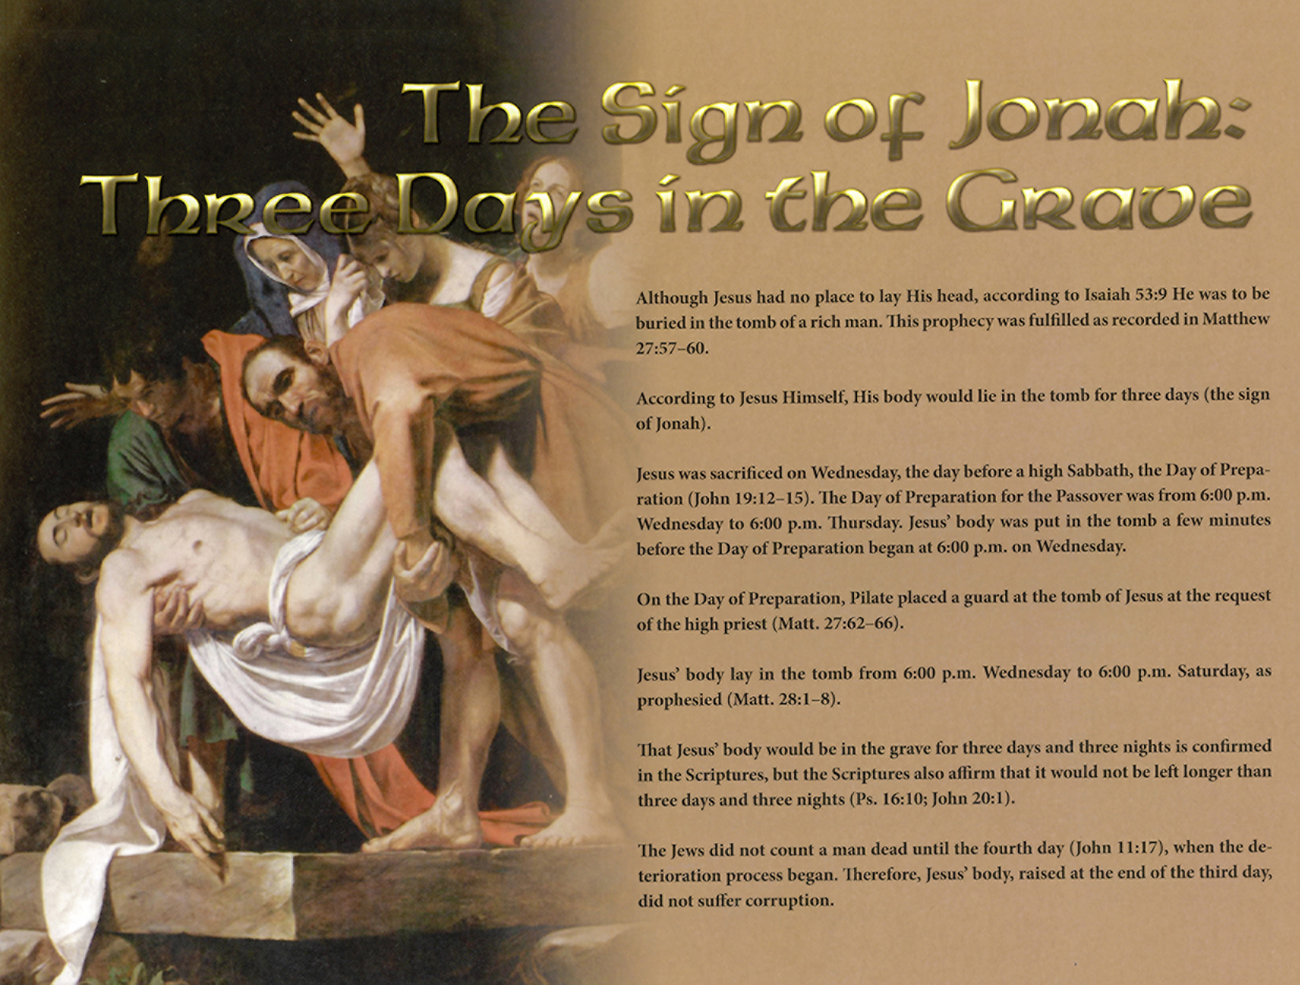 2013 Prophecy Calendar: August - The Sign of Jonah: Three Days in the Grave